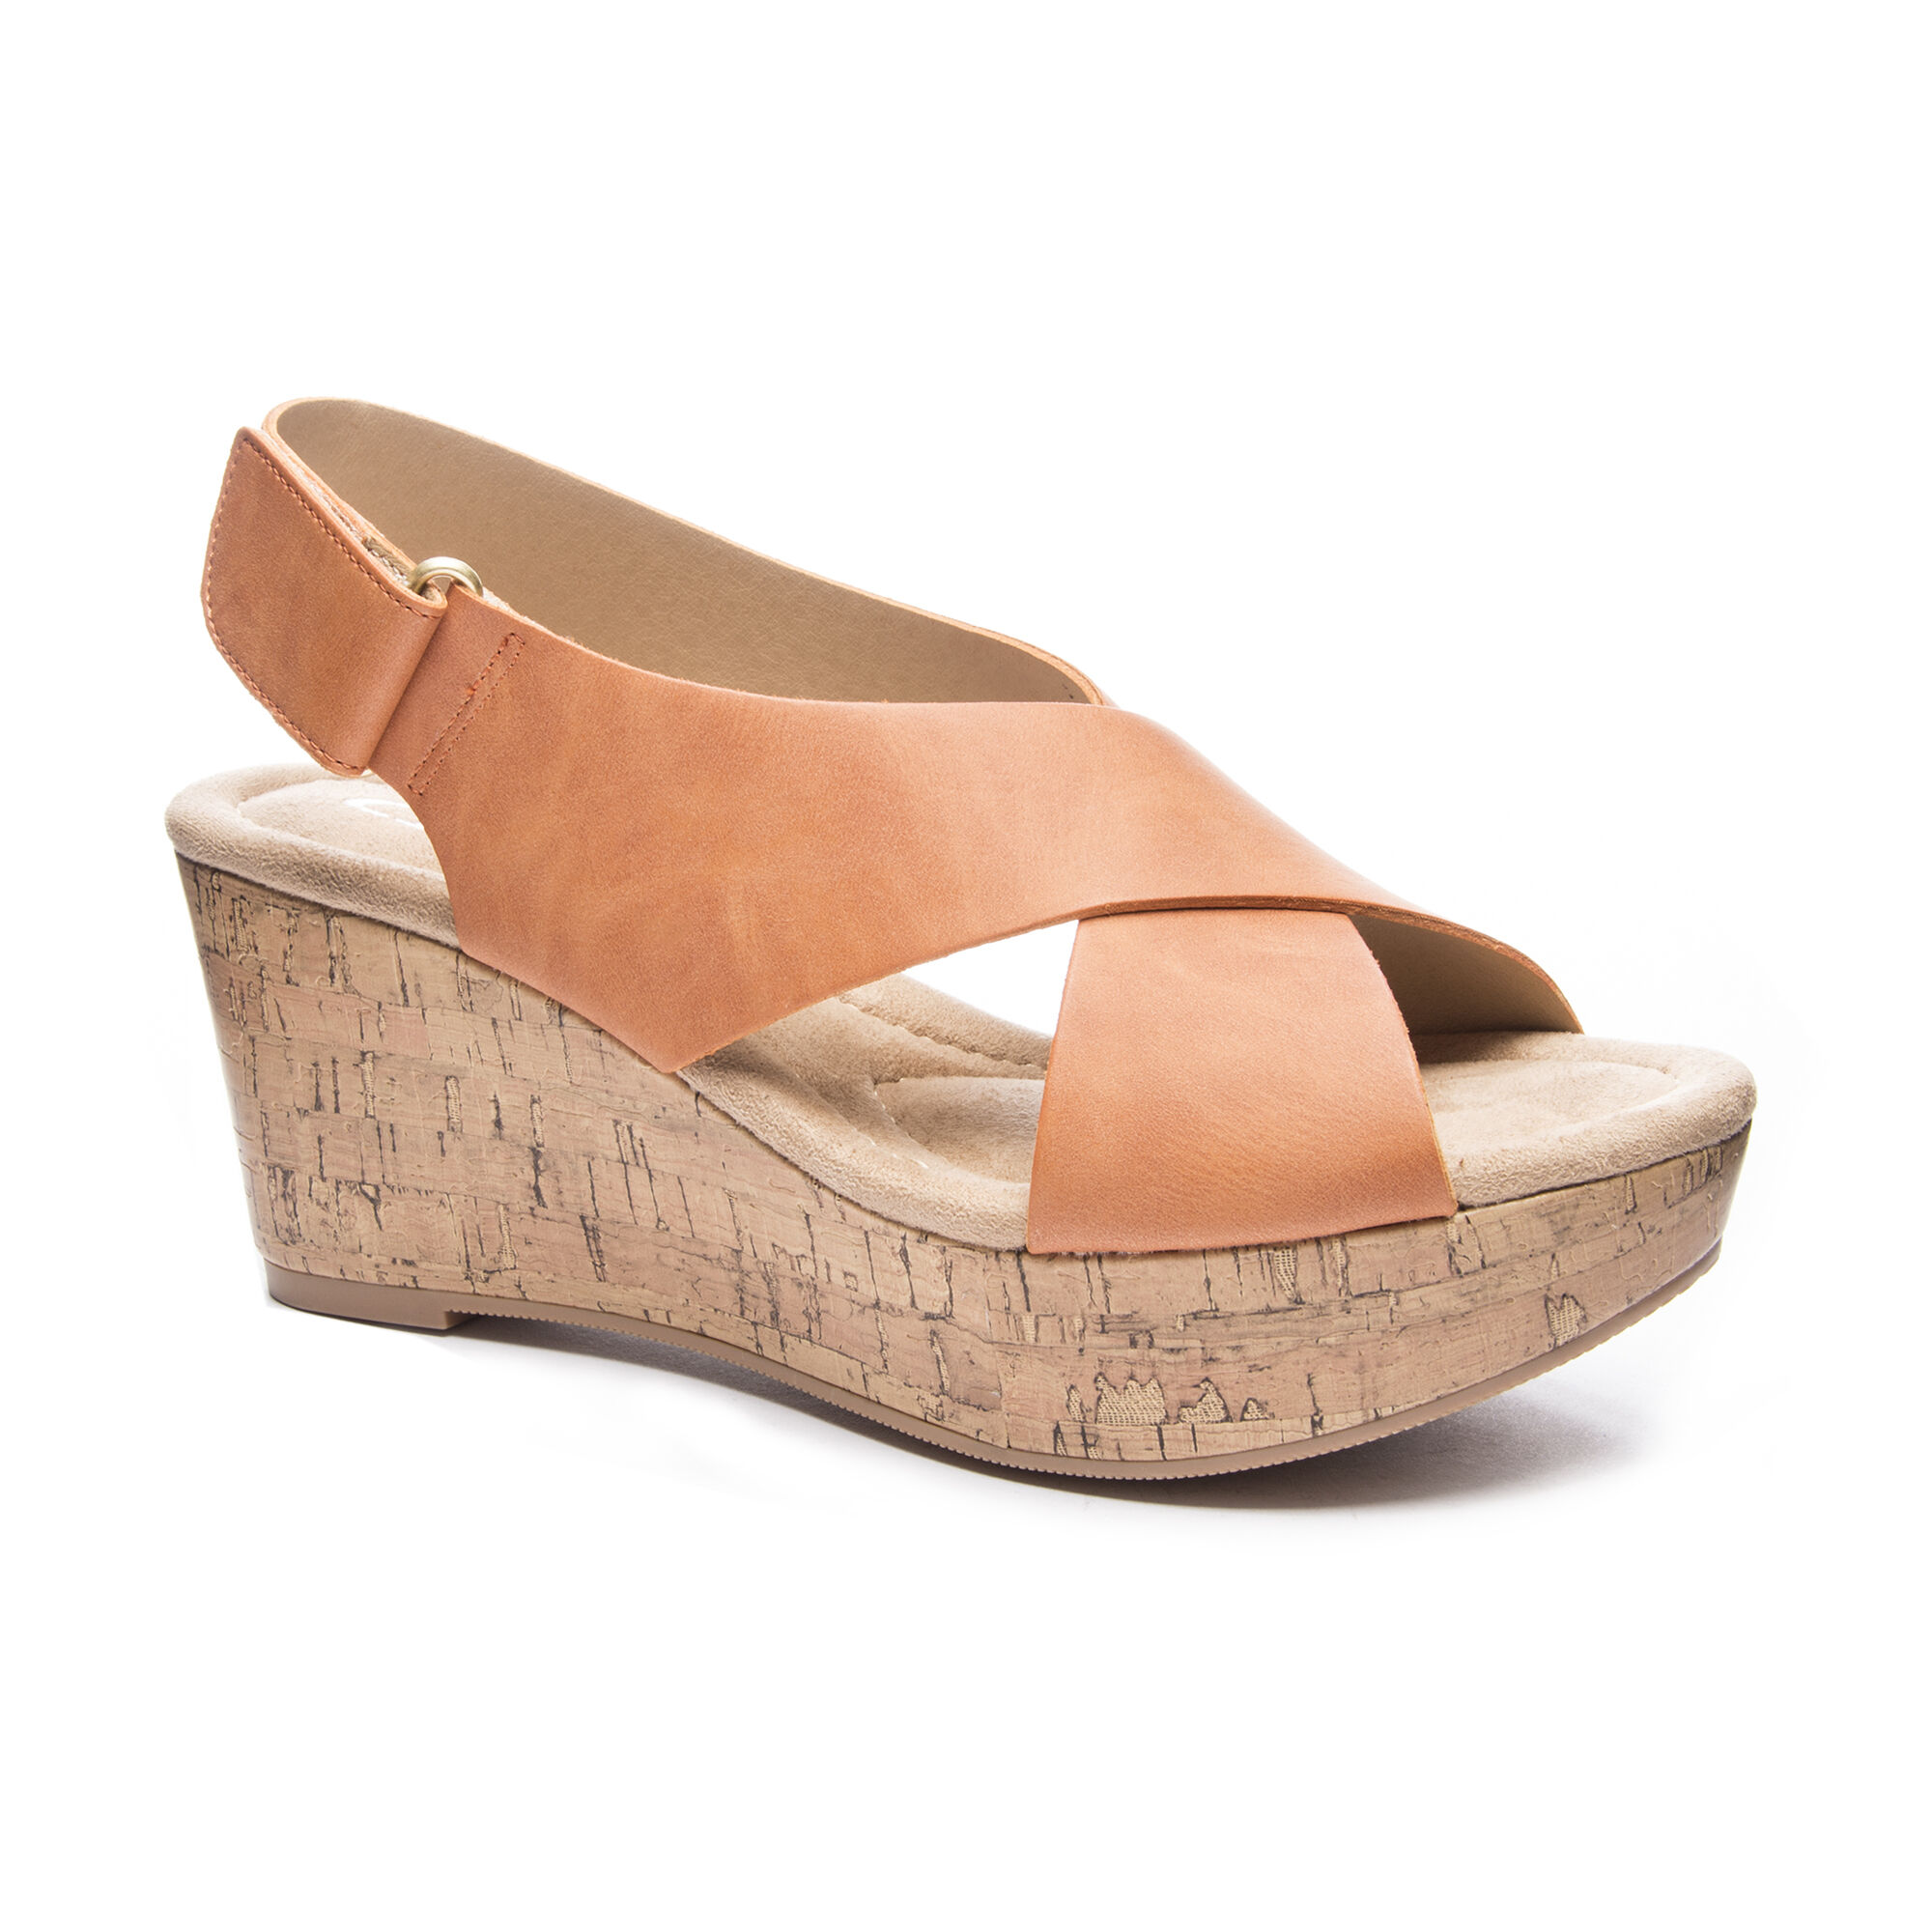 Laundry Wedge By Dream Girl SandalChinese Cl Cork 0Pnk8wO